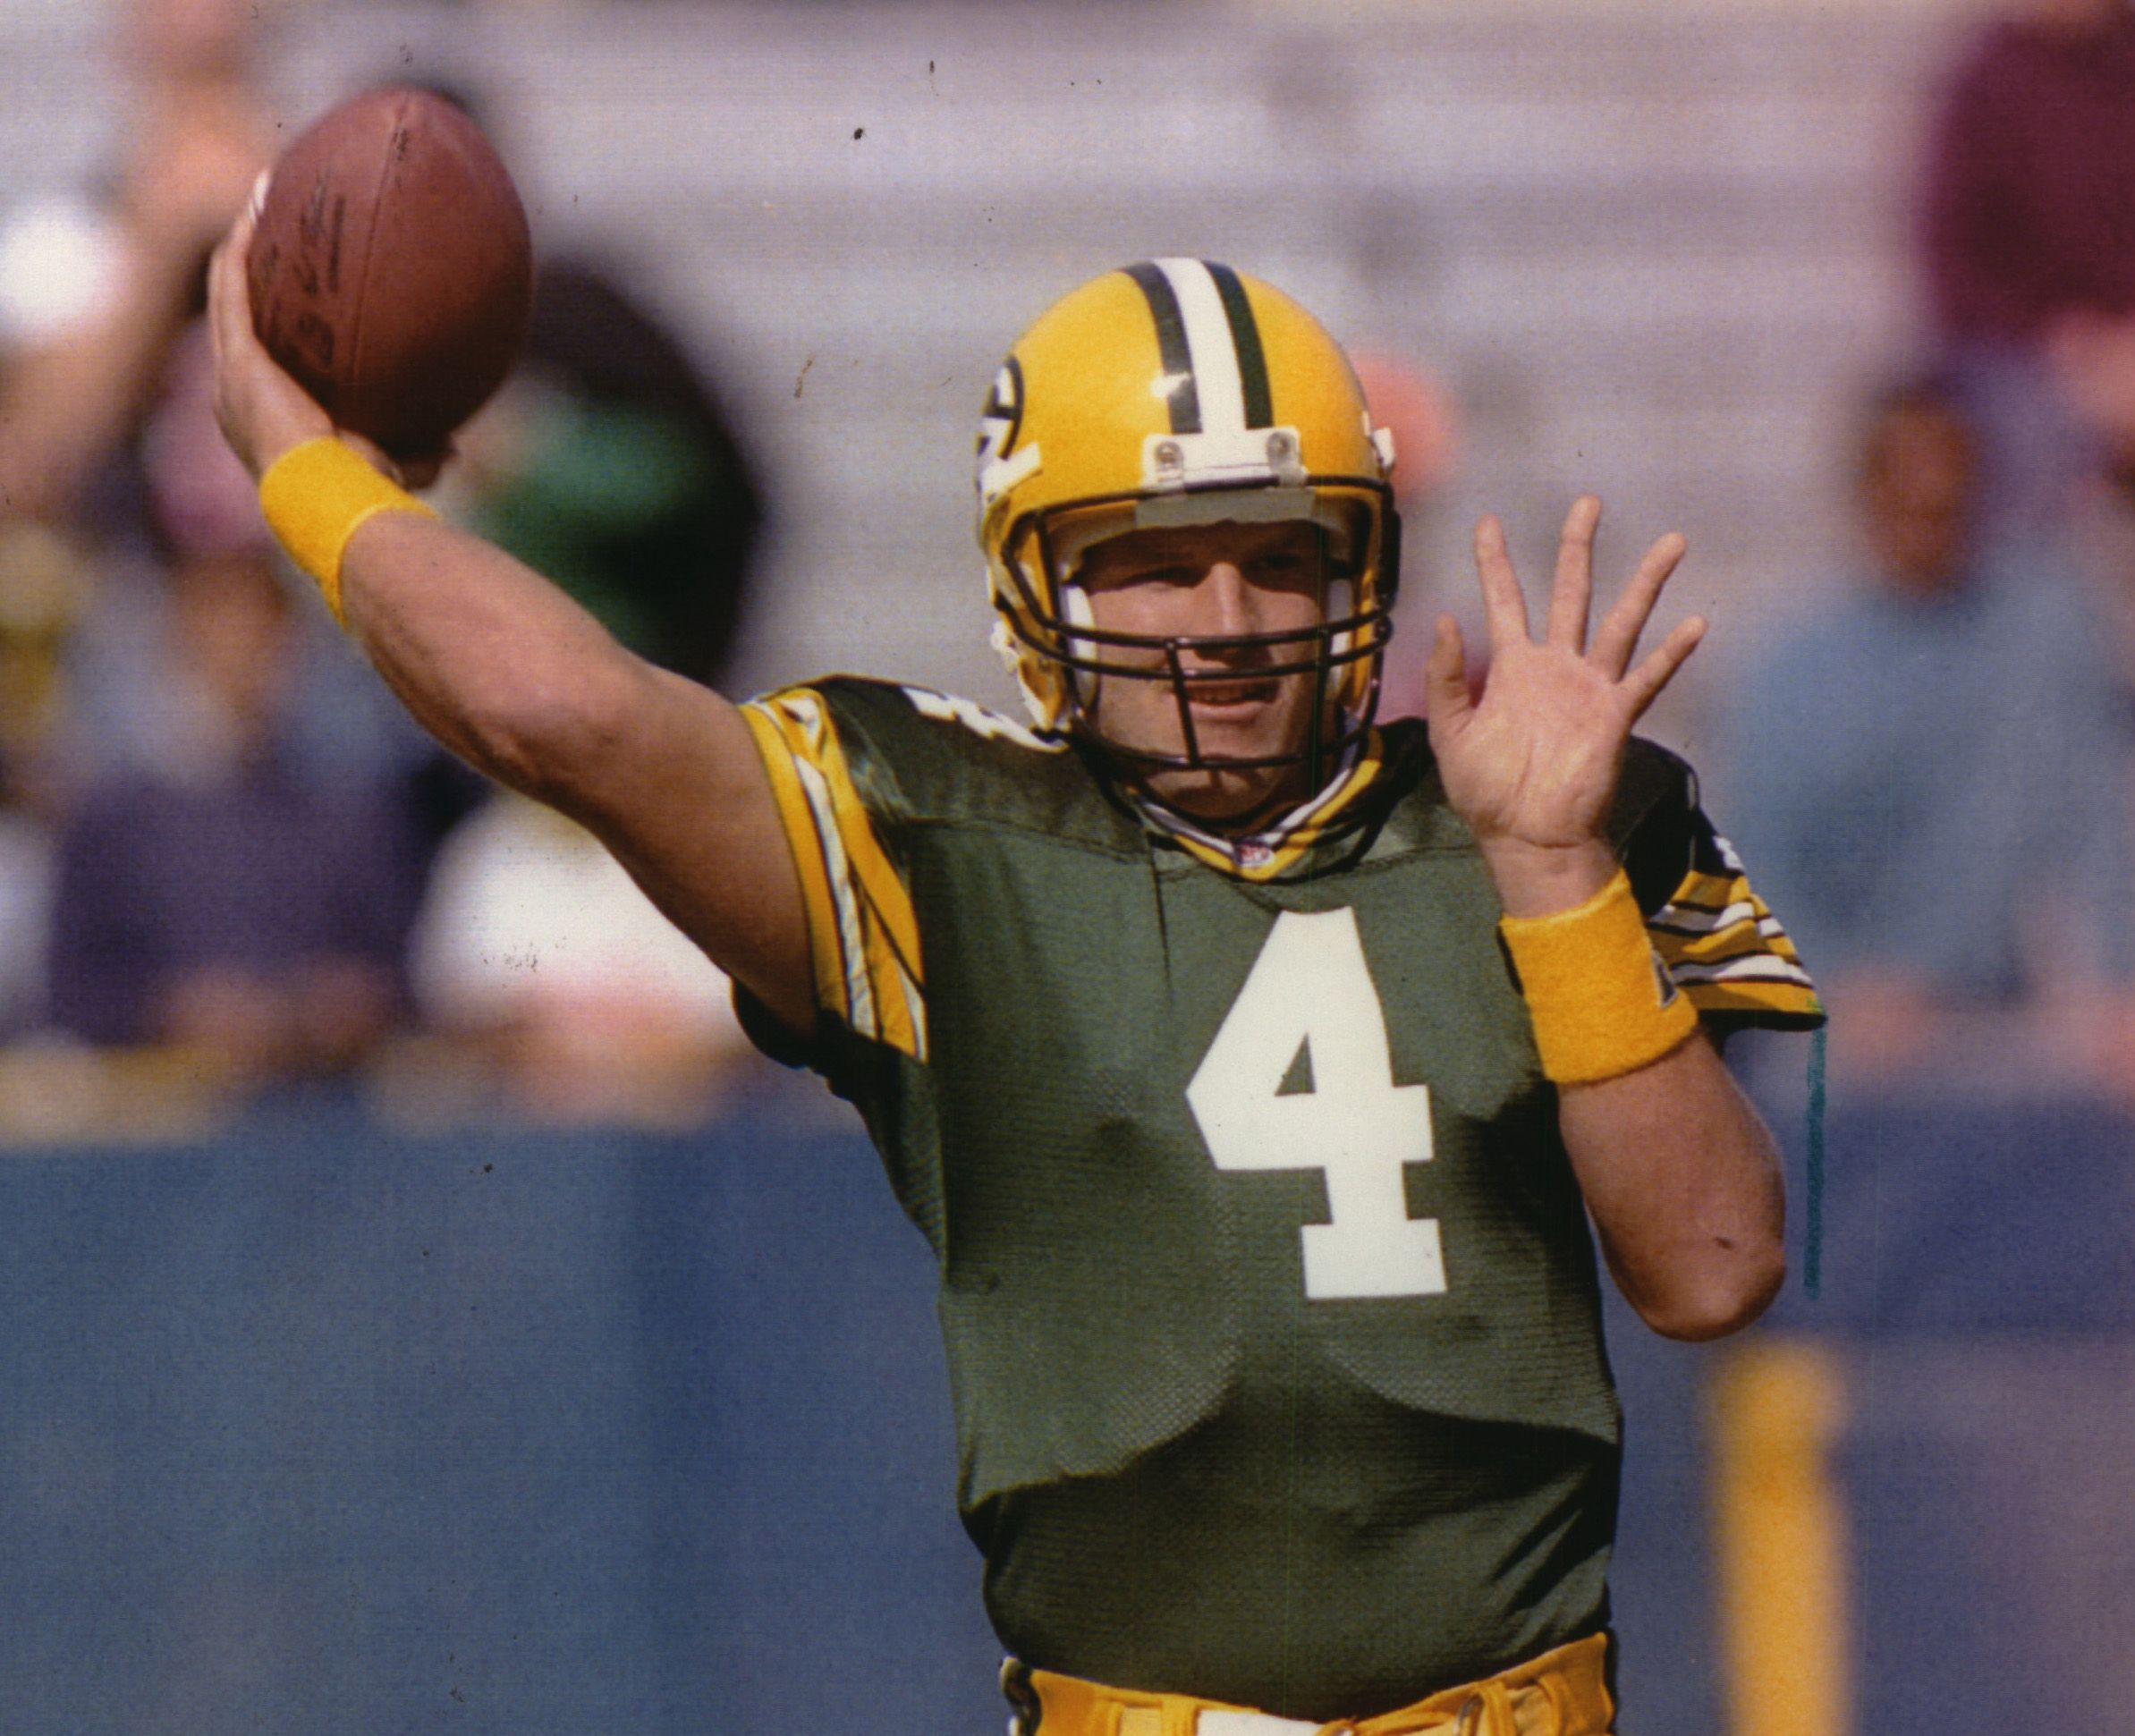 Flashback 1992: Brett Favre Leads Packers to Win Over Steelers in His First NFL Start